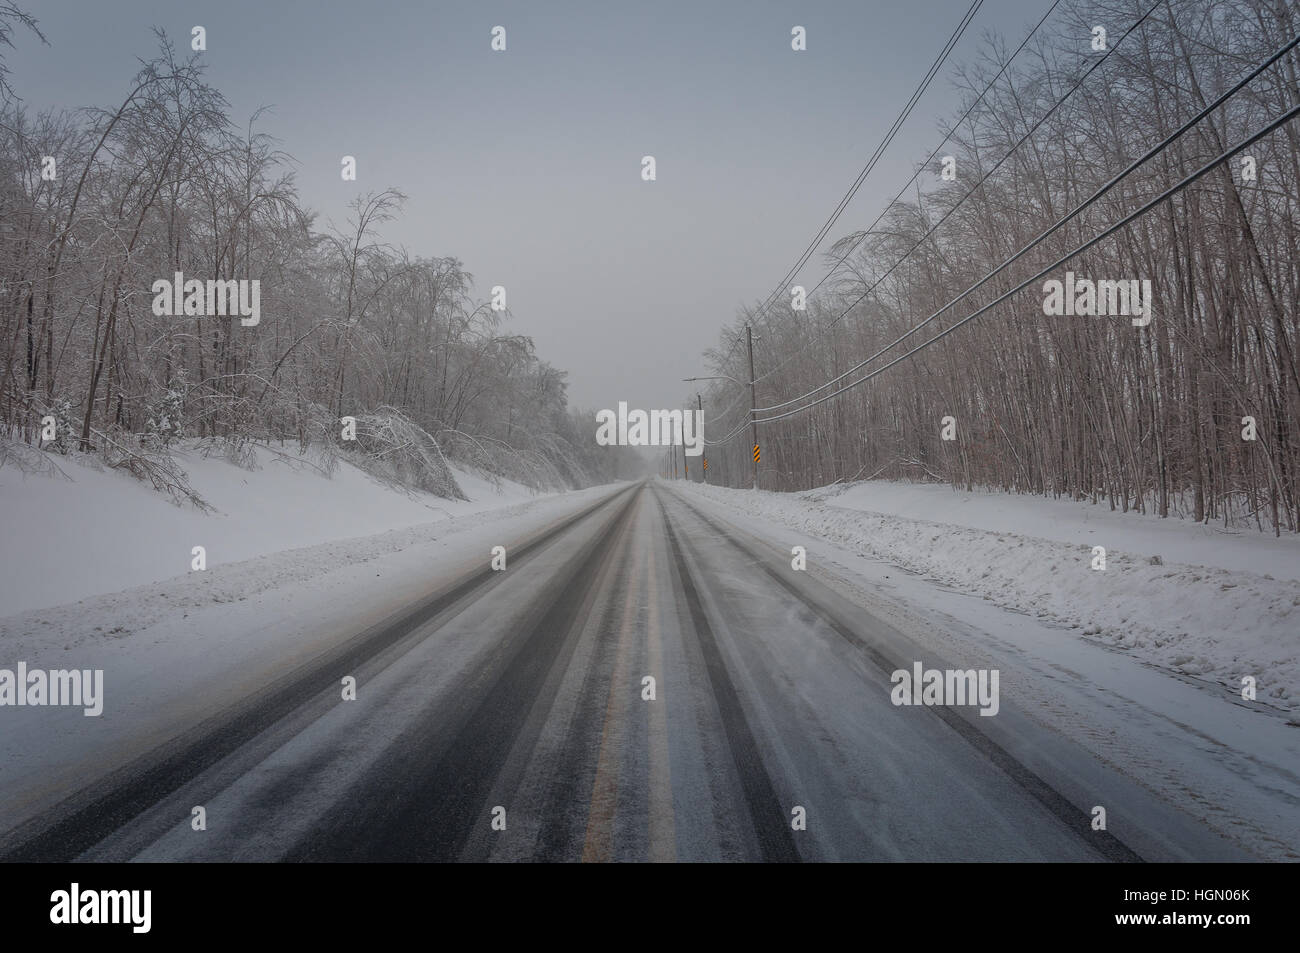 Winter icy cold road conditions 3. - Stock Image